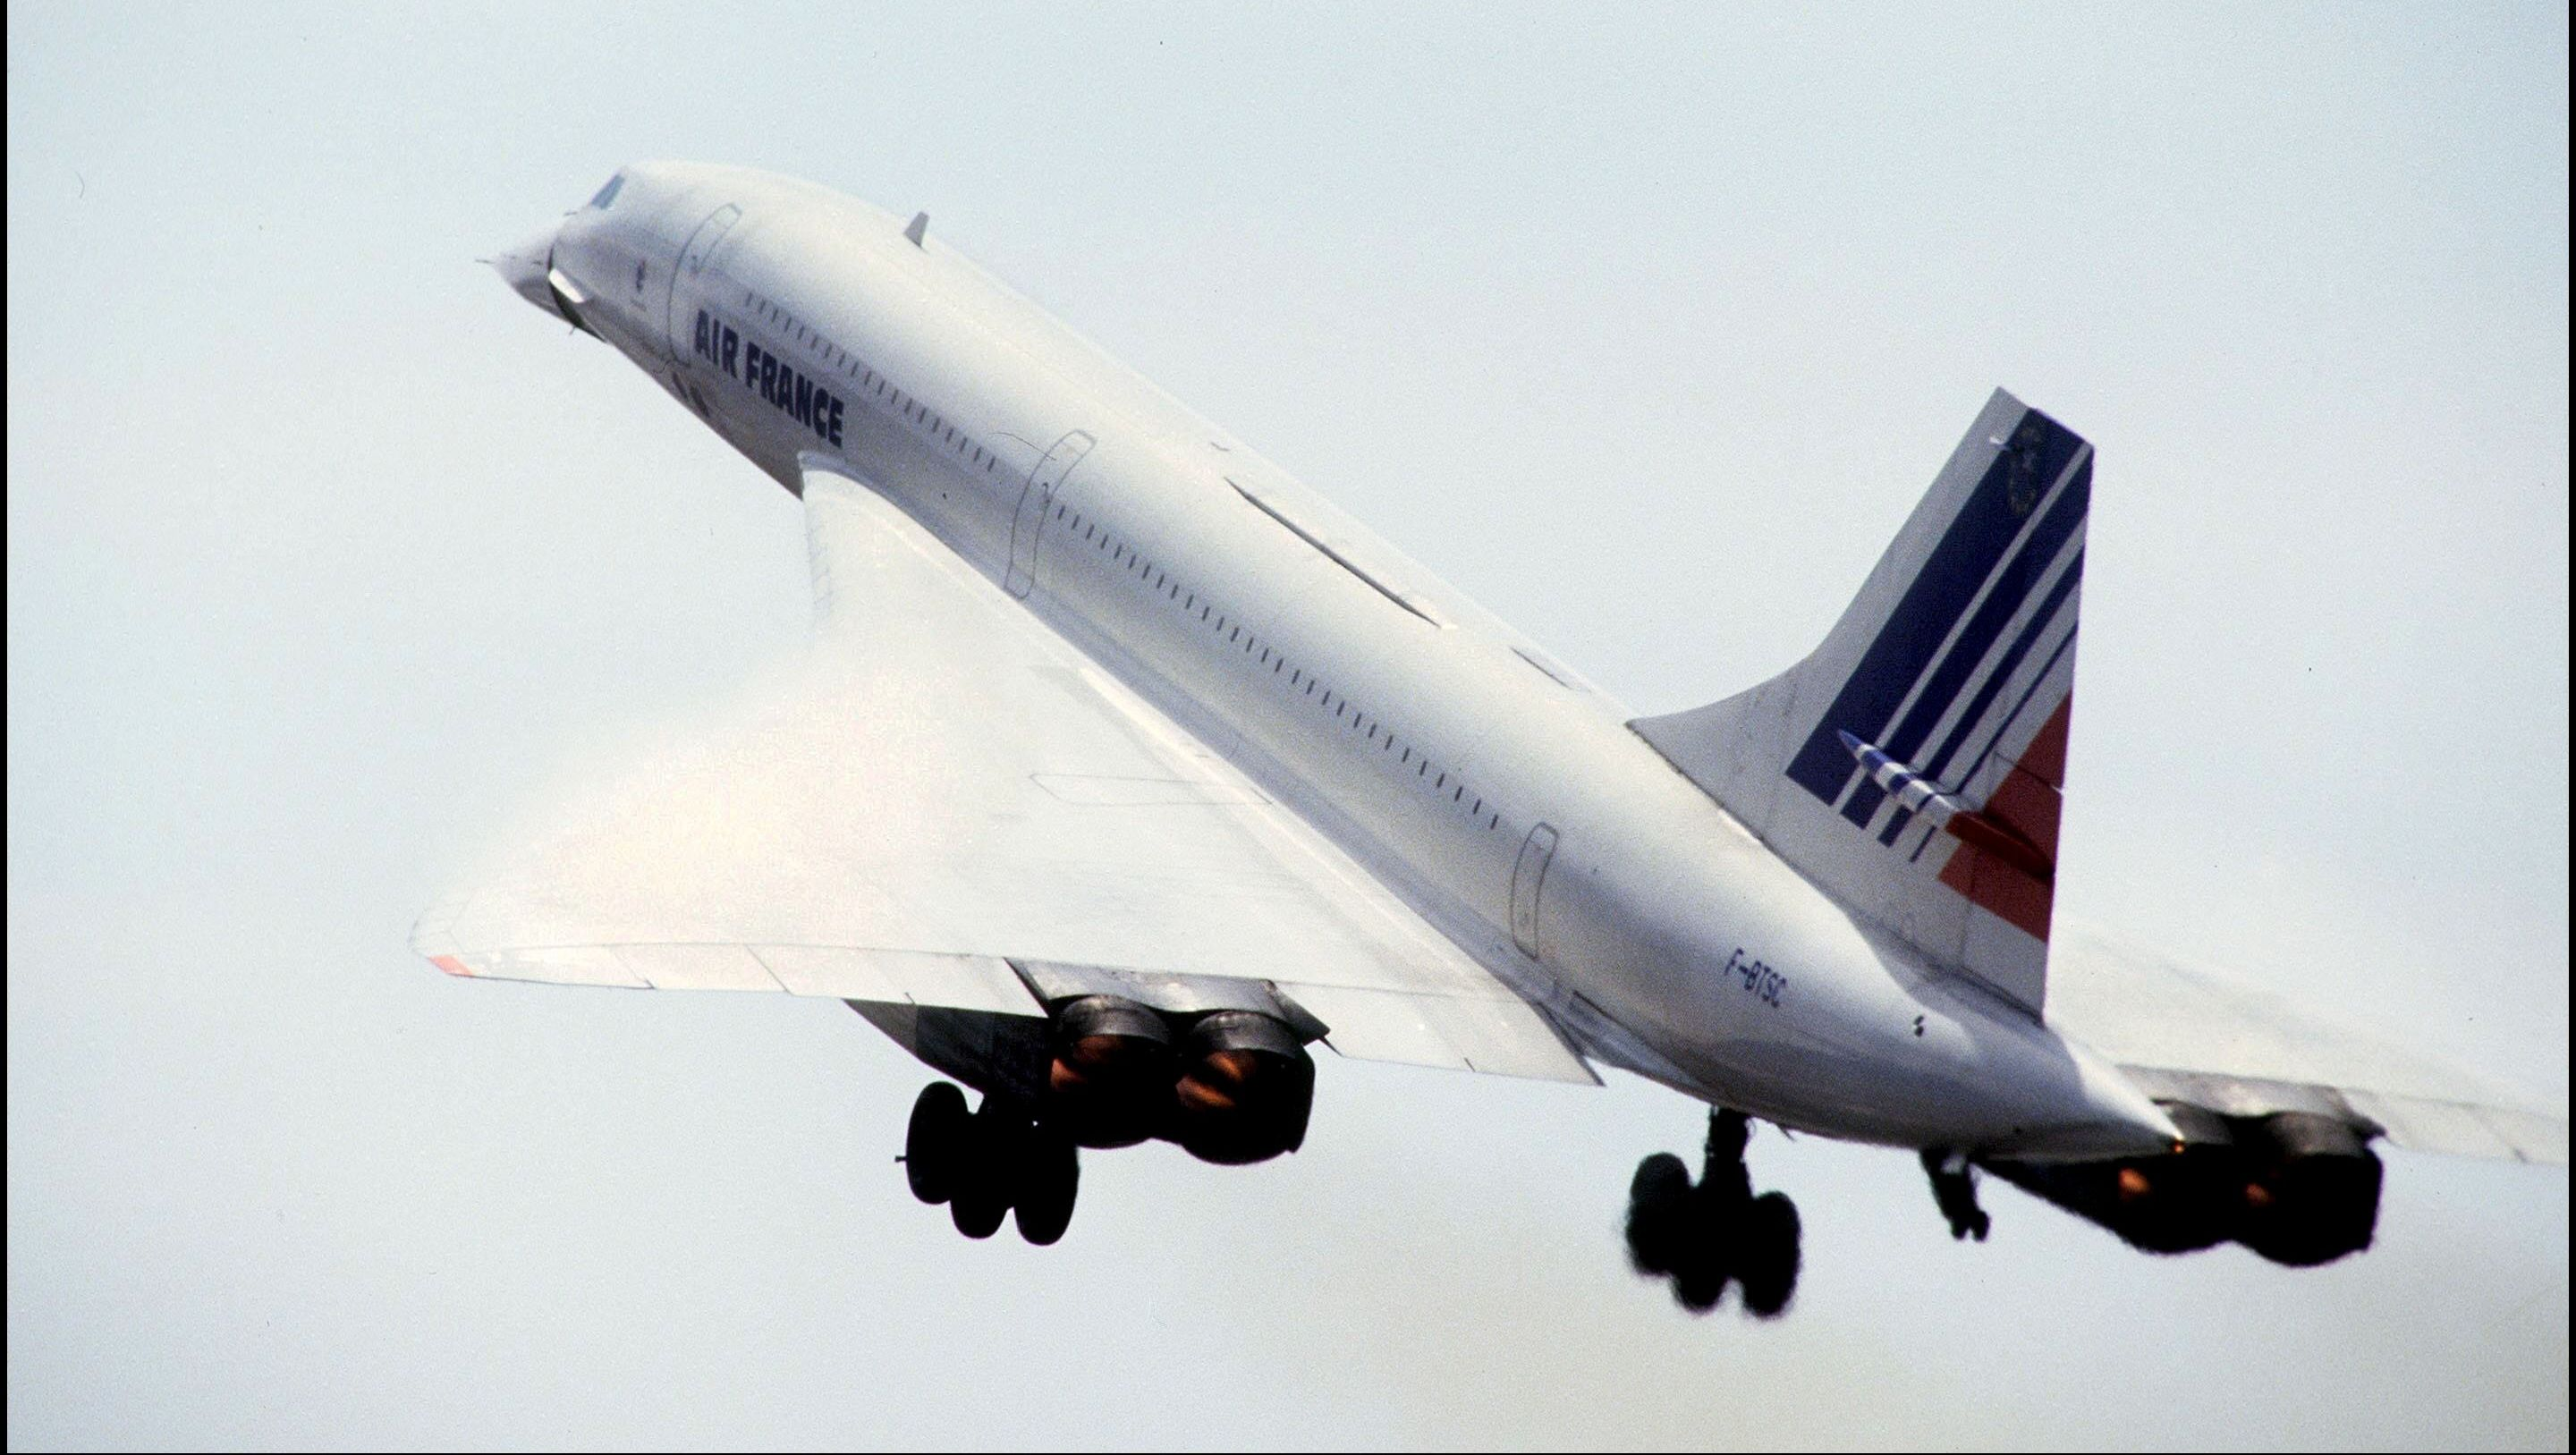 Why The Concorde Is Such a Badass Plane